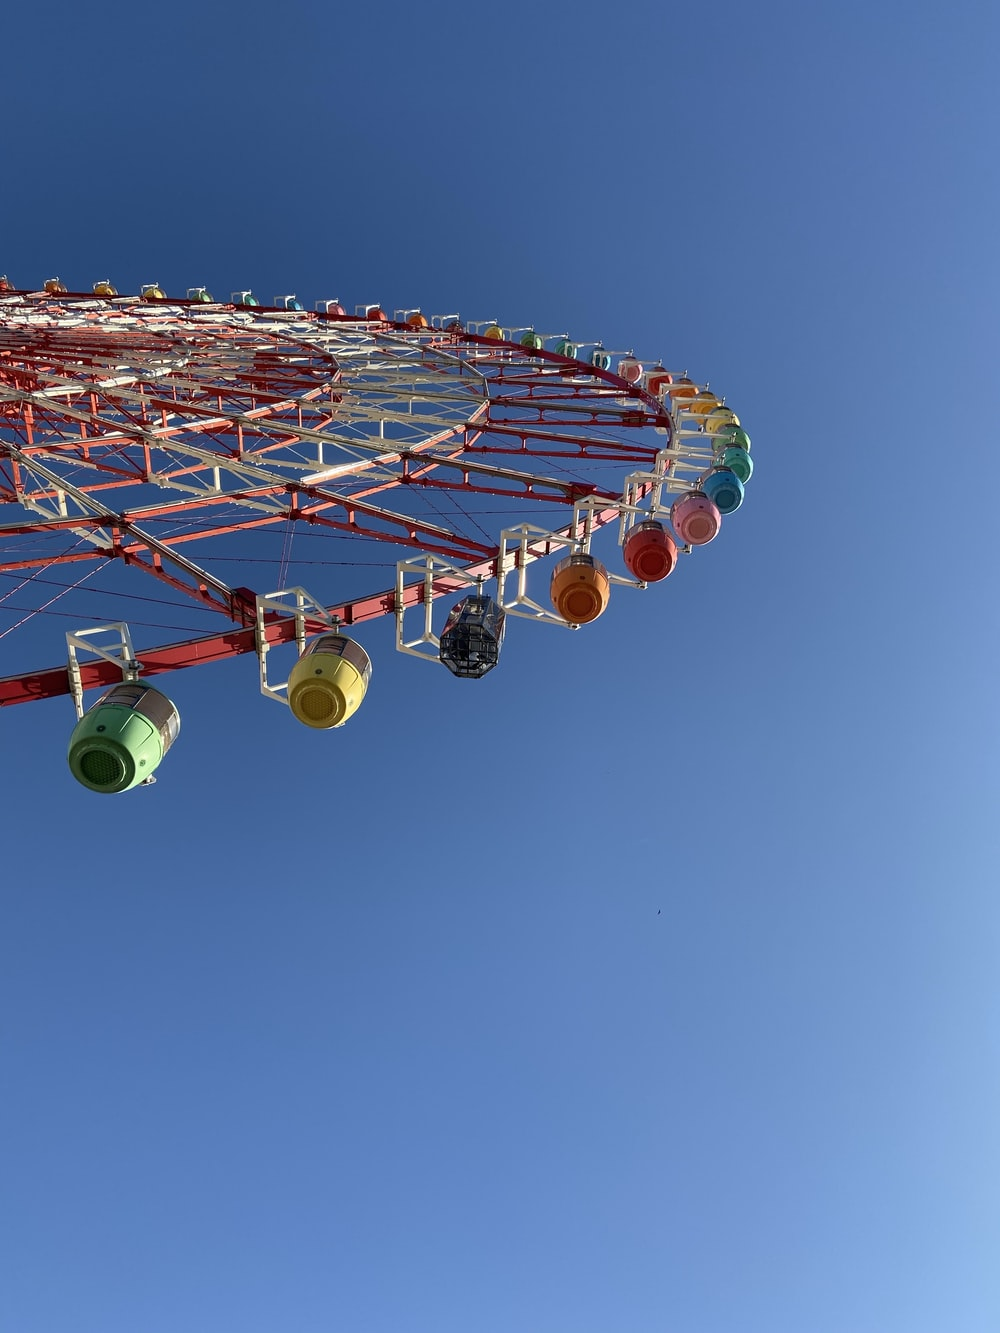 green and yellow ferris wheel under blue sky during daytime